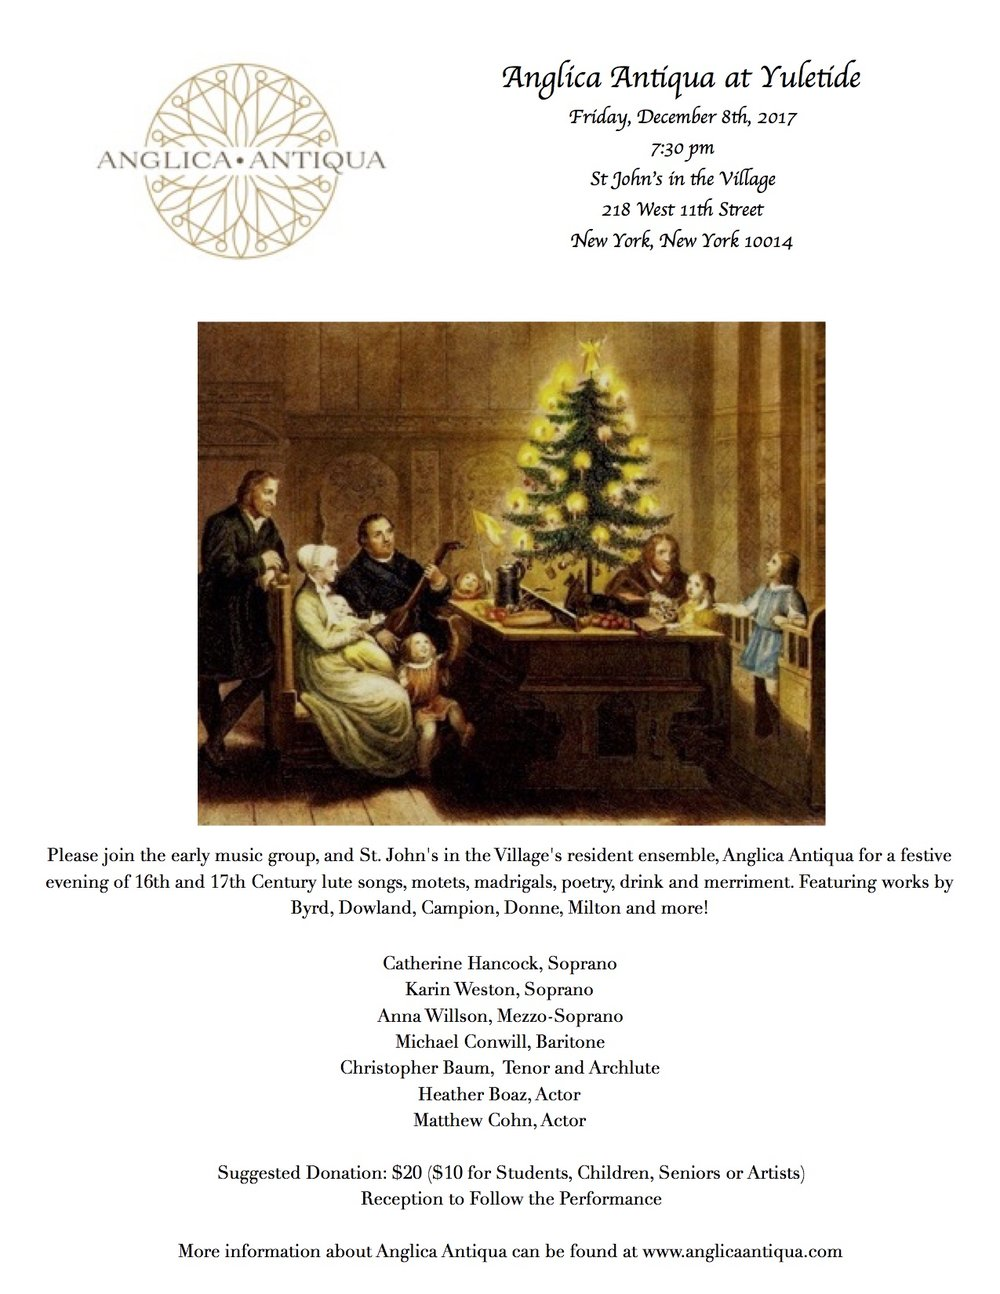 Anglica Antiqua at Yuletide Poster .jpg